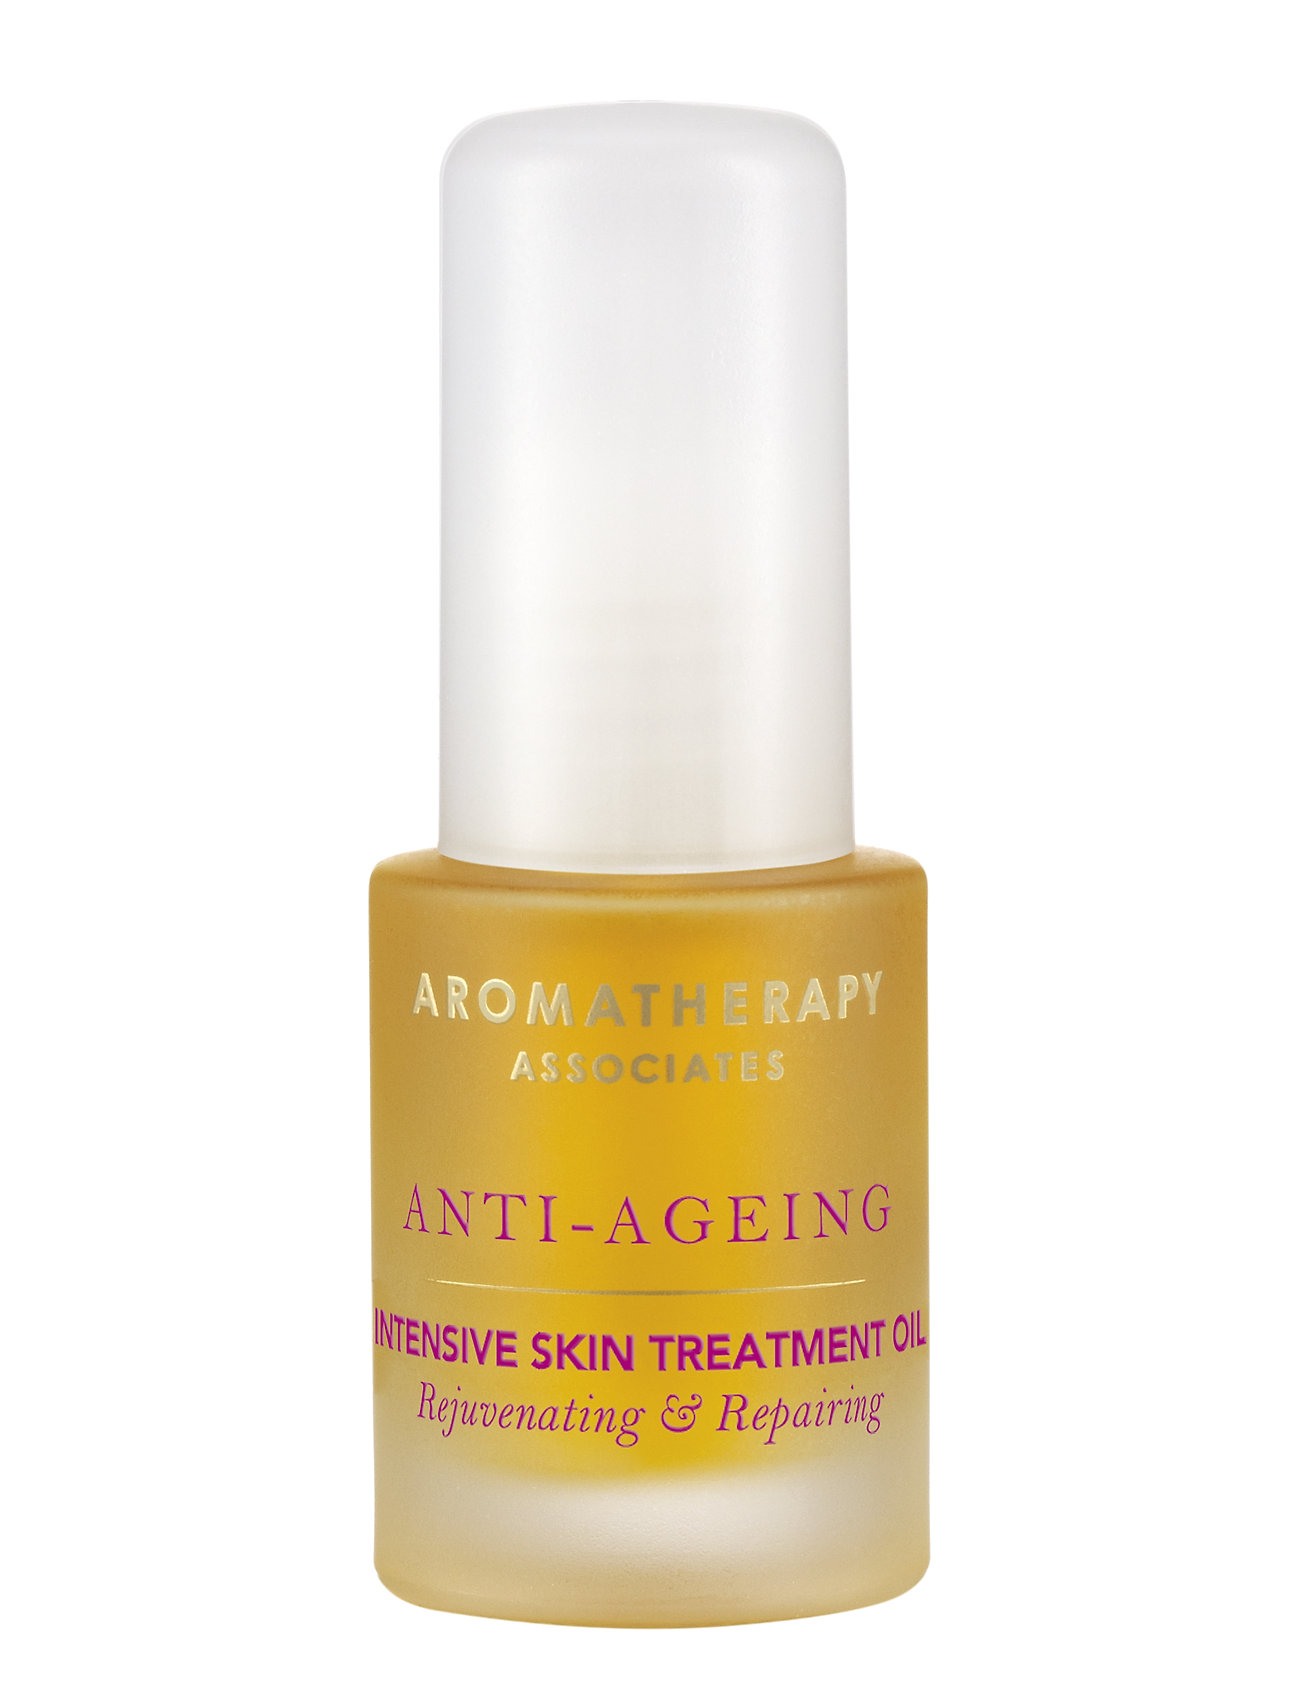 Image of Anti-Ageing Intensive Skin Treatment Oil (3082978081)